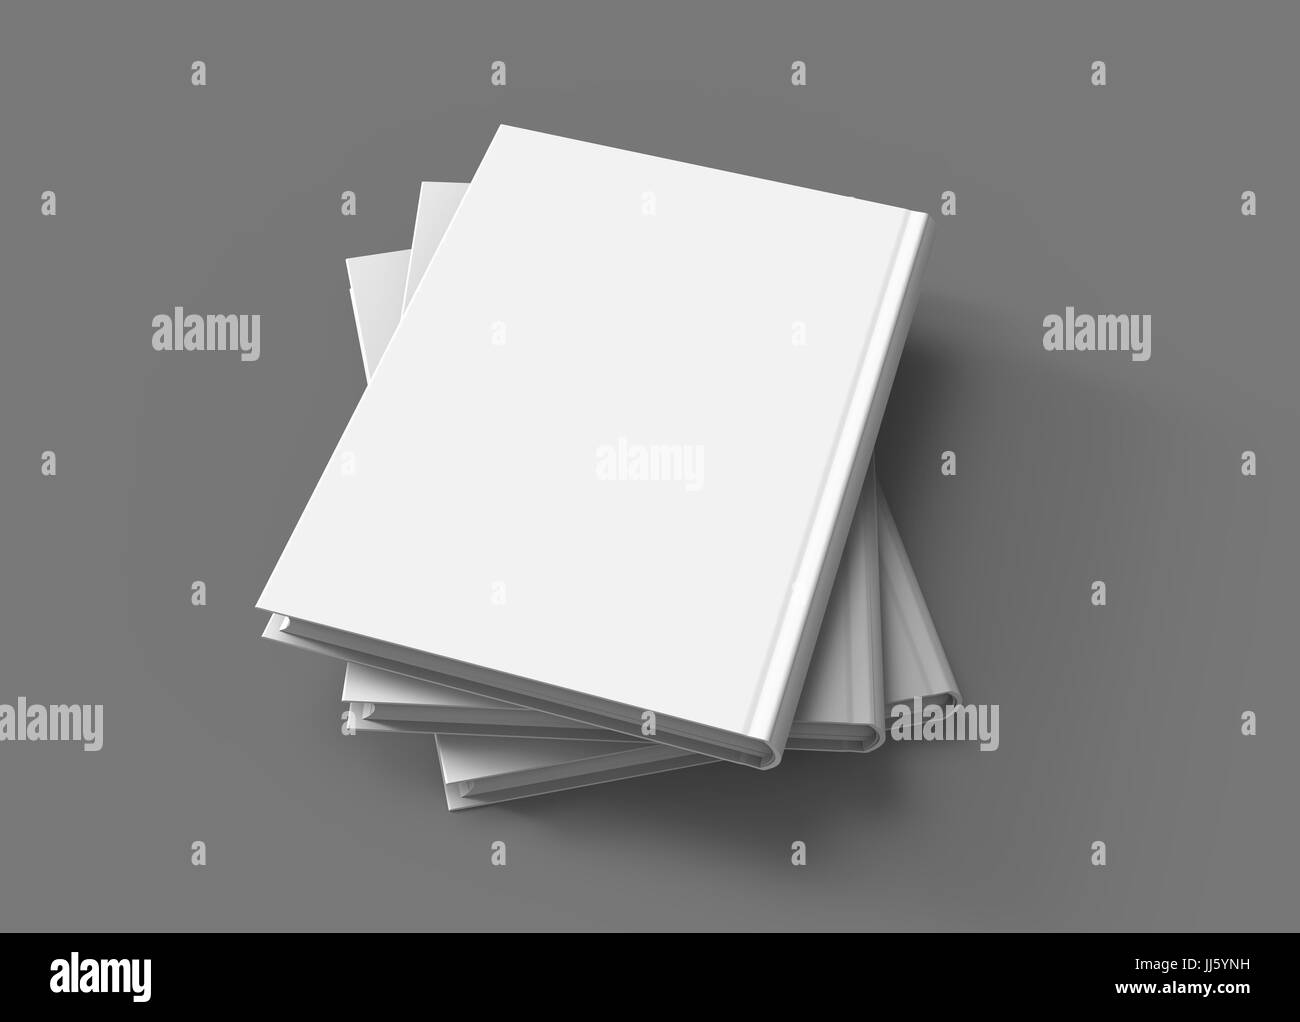 hardcover books template pile of blank books mockup in spral shaped